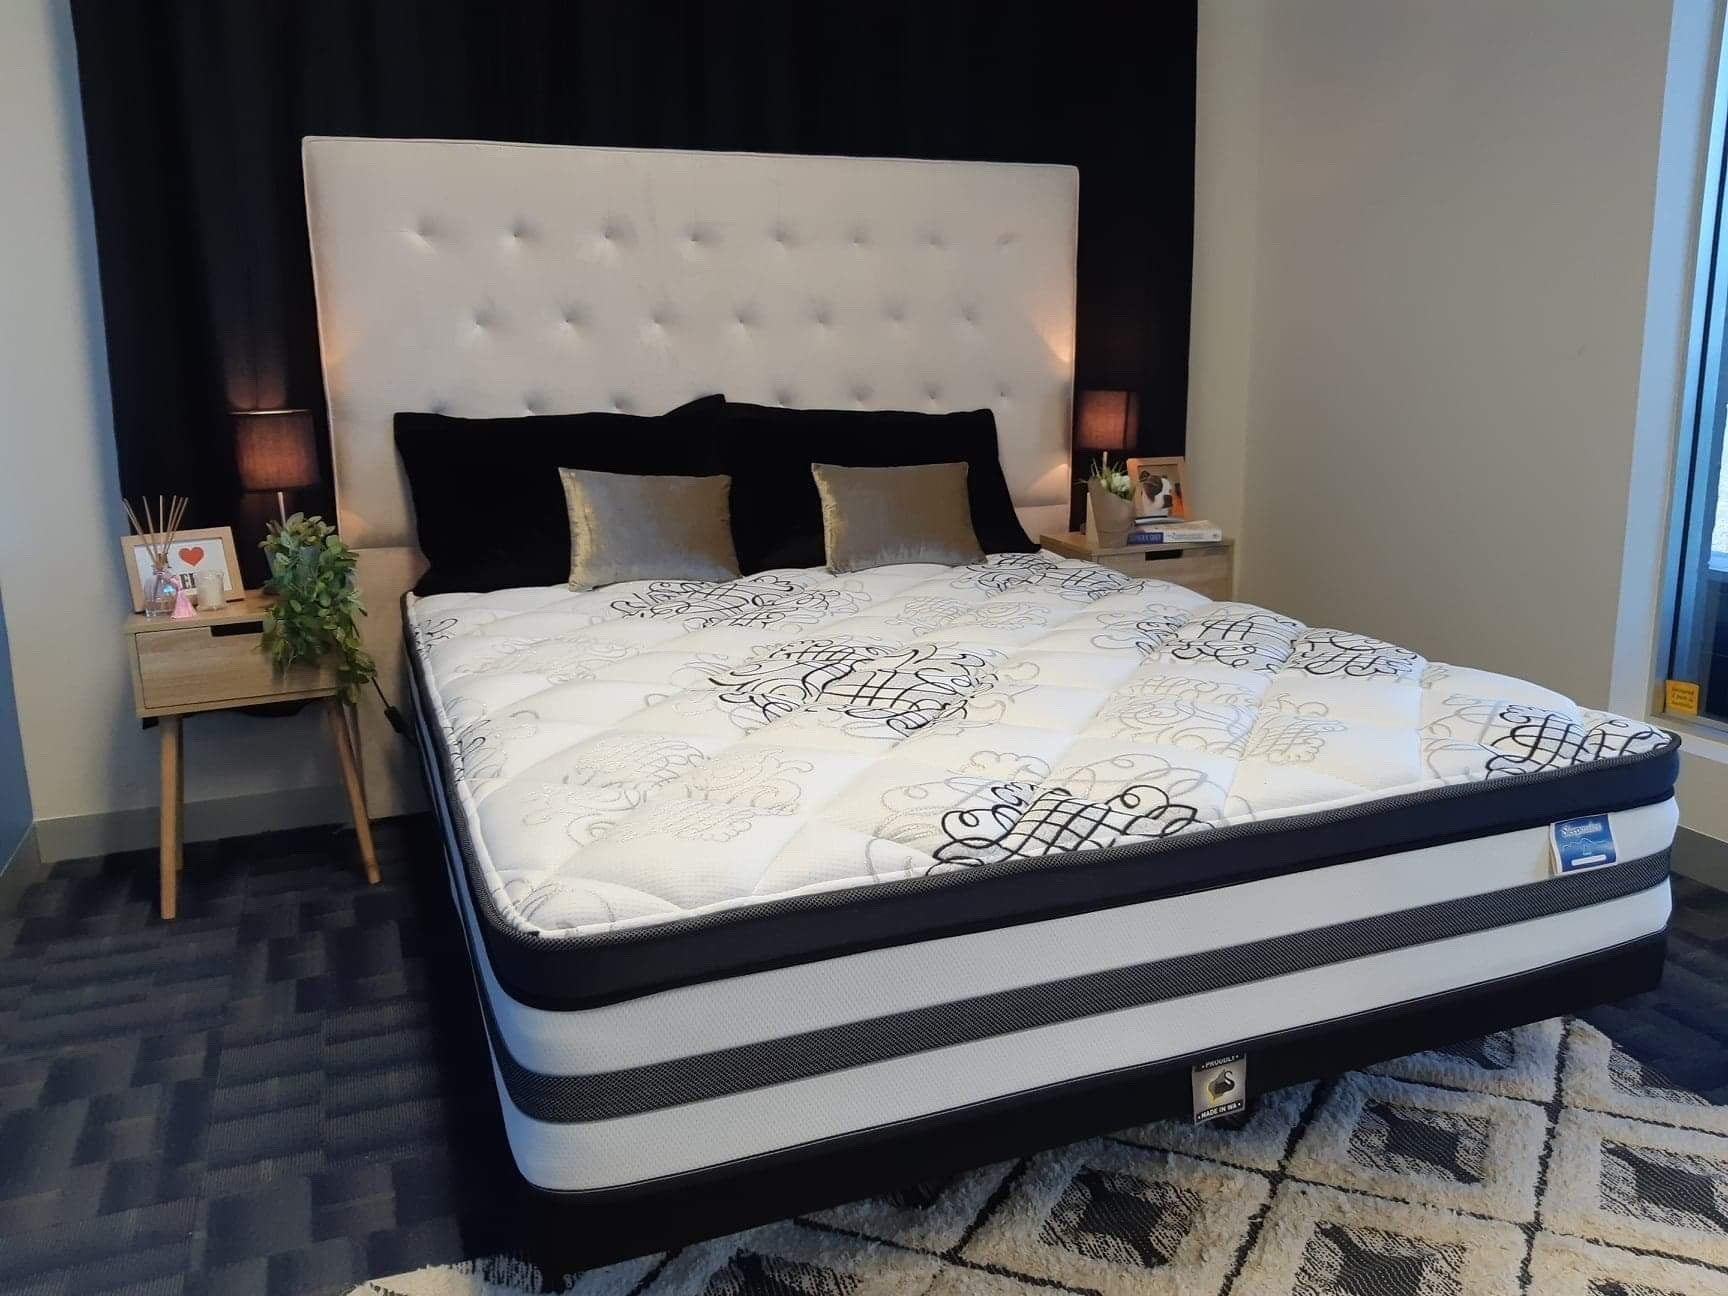 28cm Dream Mattress